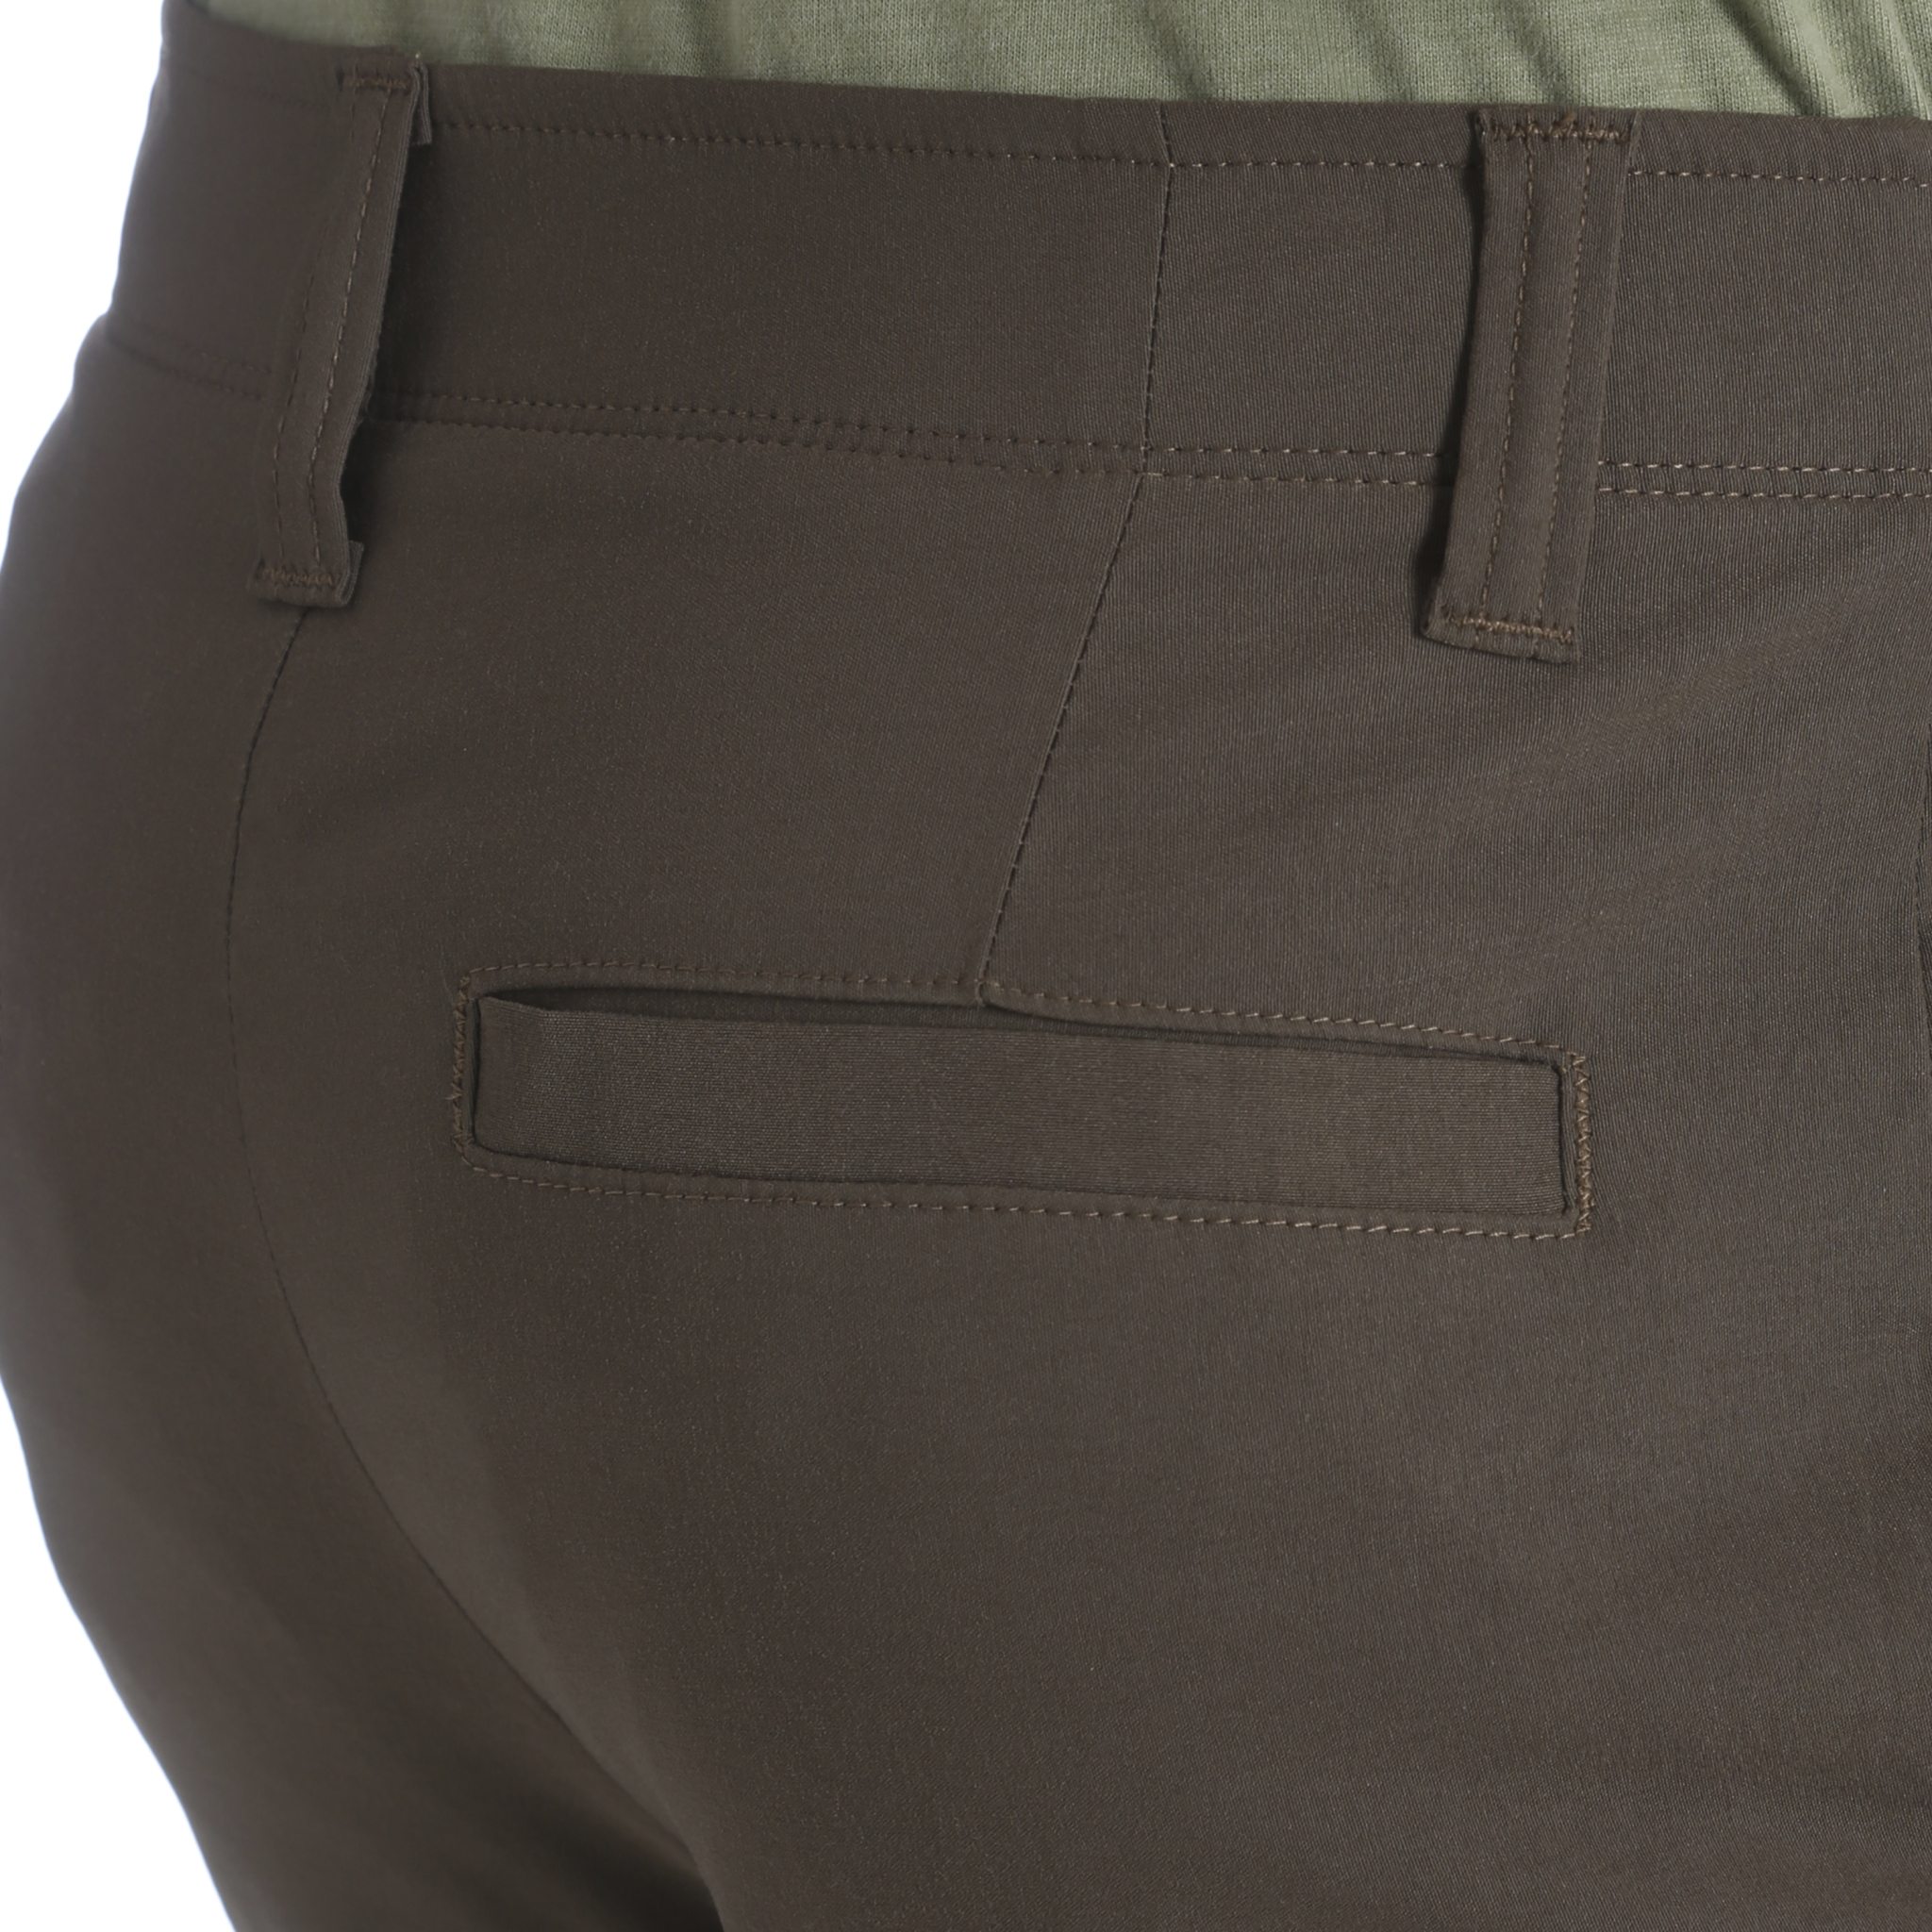 Wrangler-NEW-Solid-Men-039-s-Performance-Series-Outdoor-Comfort-Straight-Leg-Pants thumbnail 11